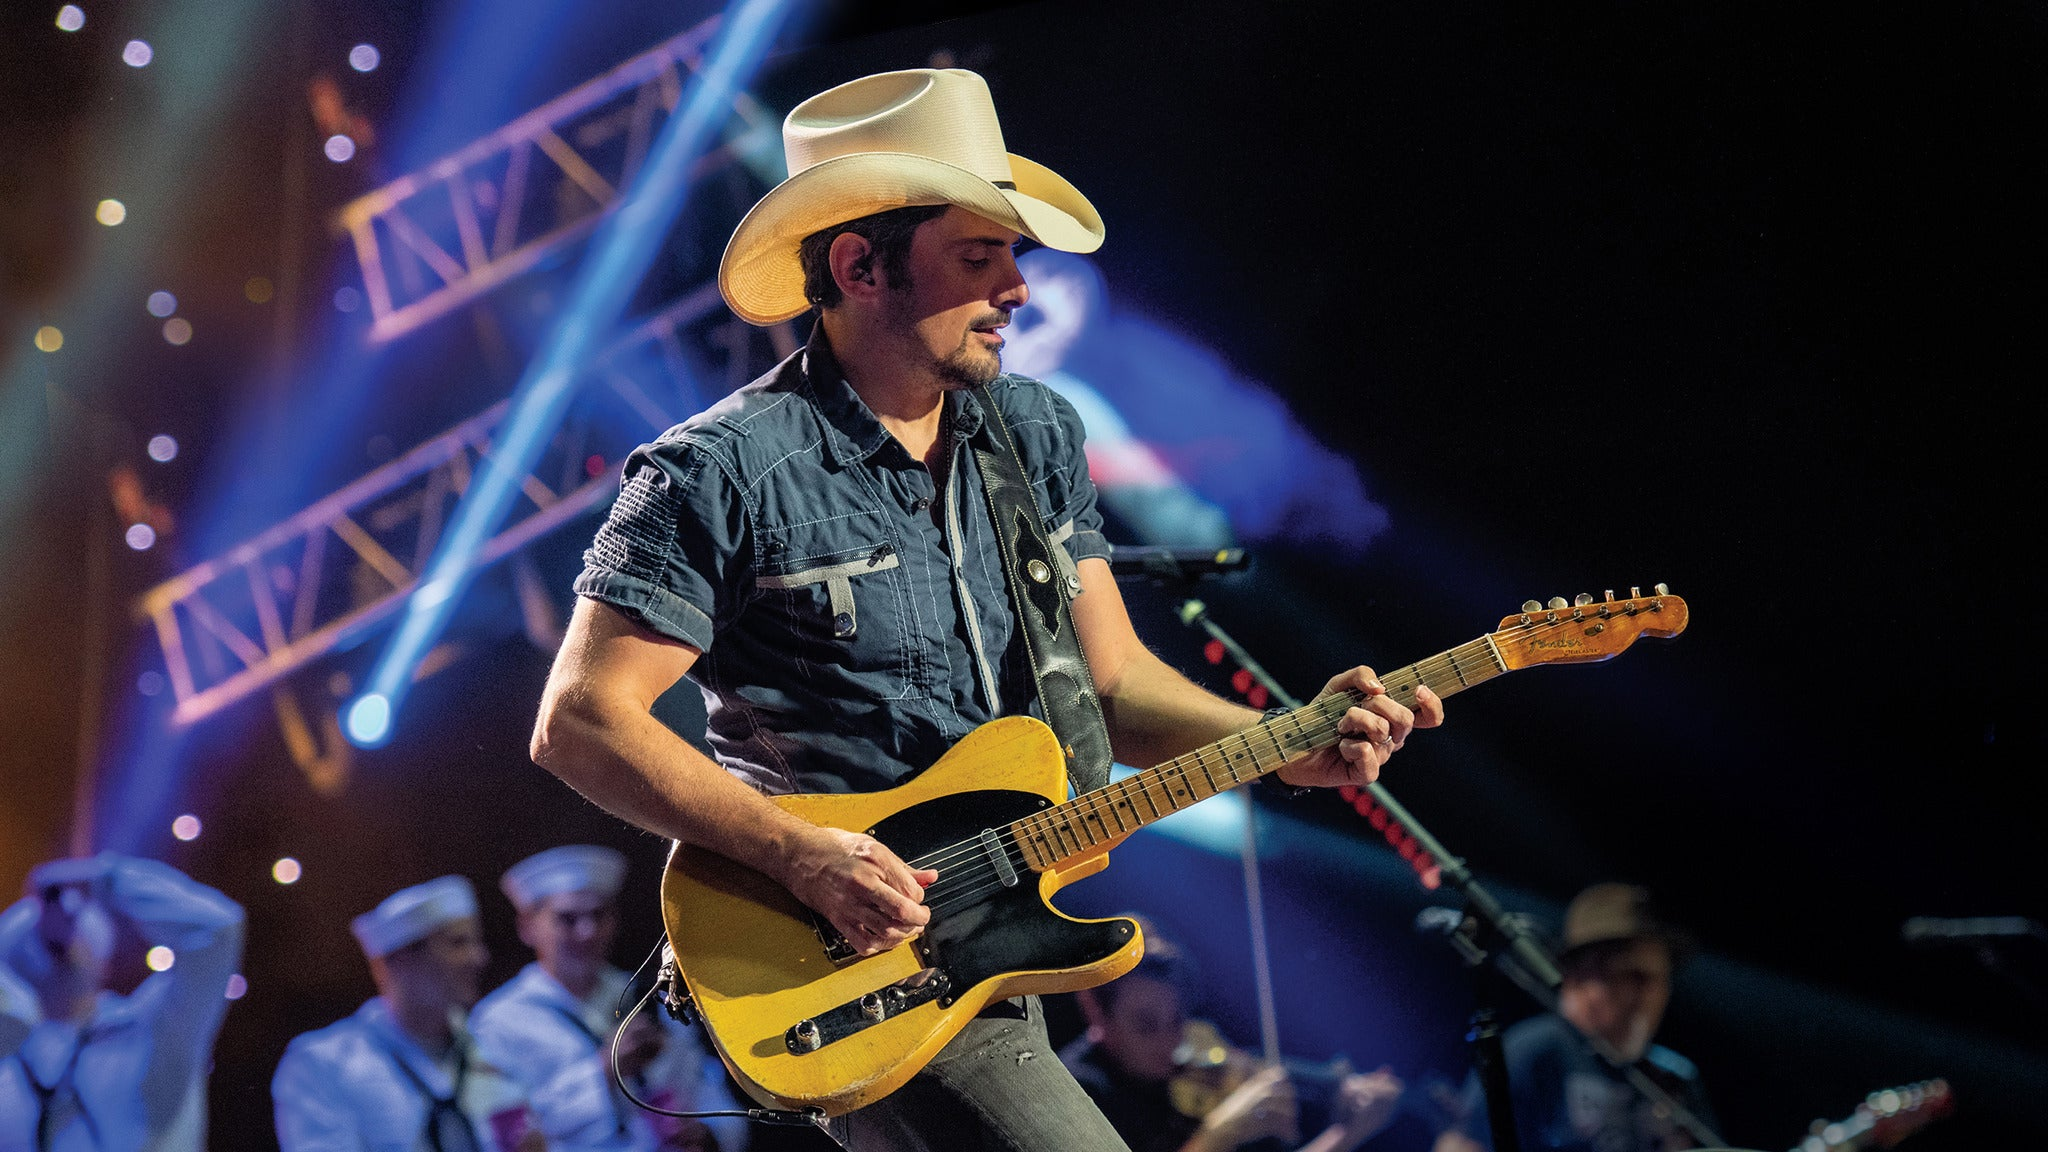 Brad Paisley World Tour 2020 at Mohegan Sun Arena